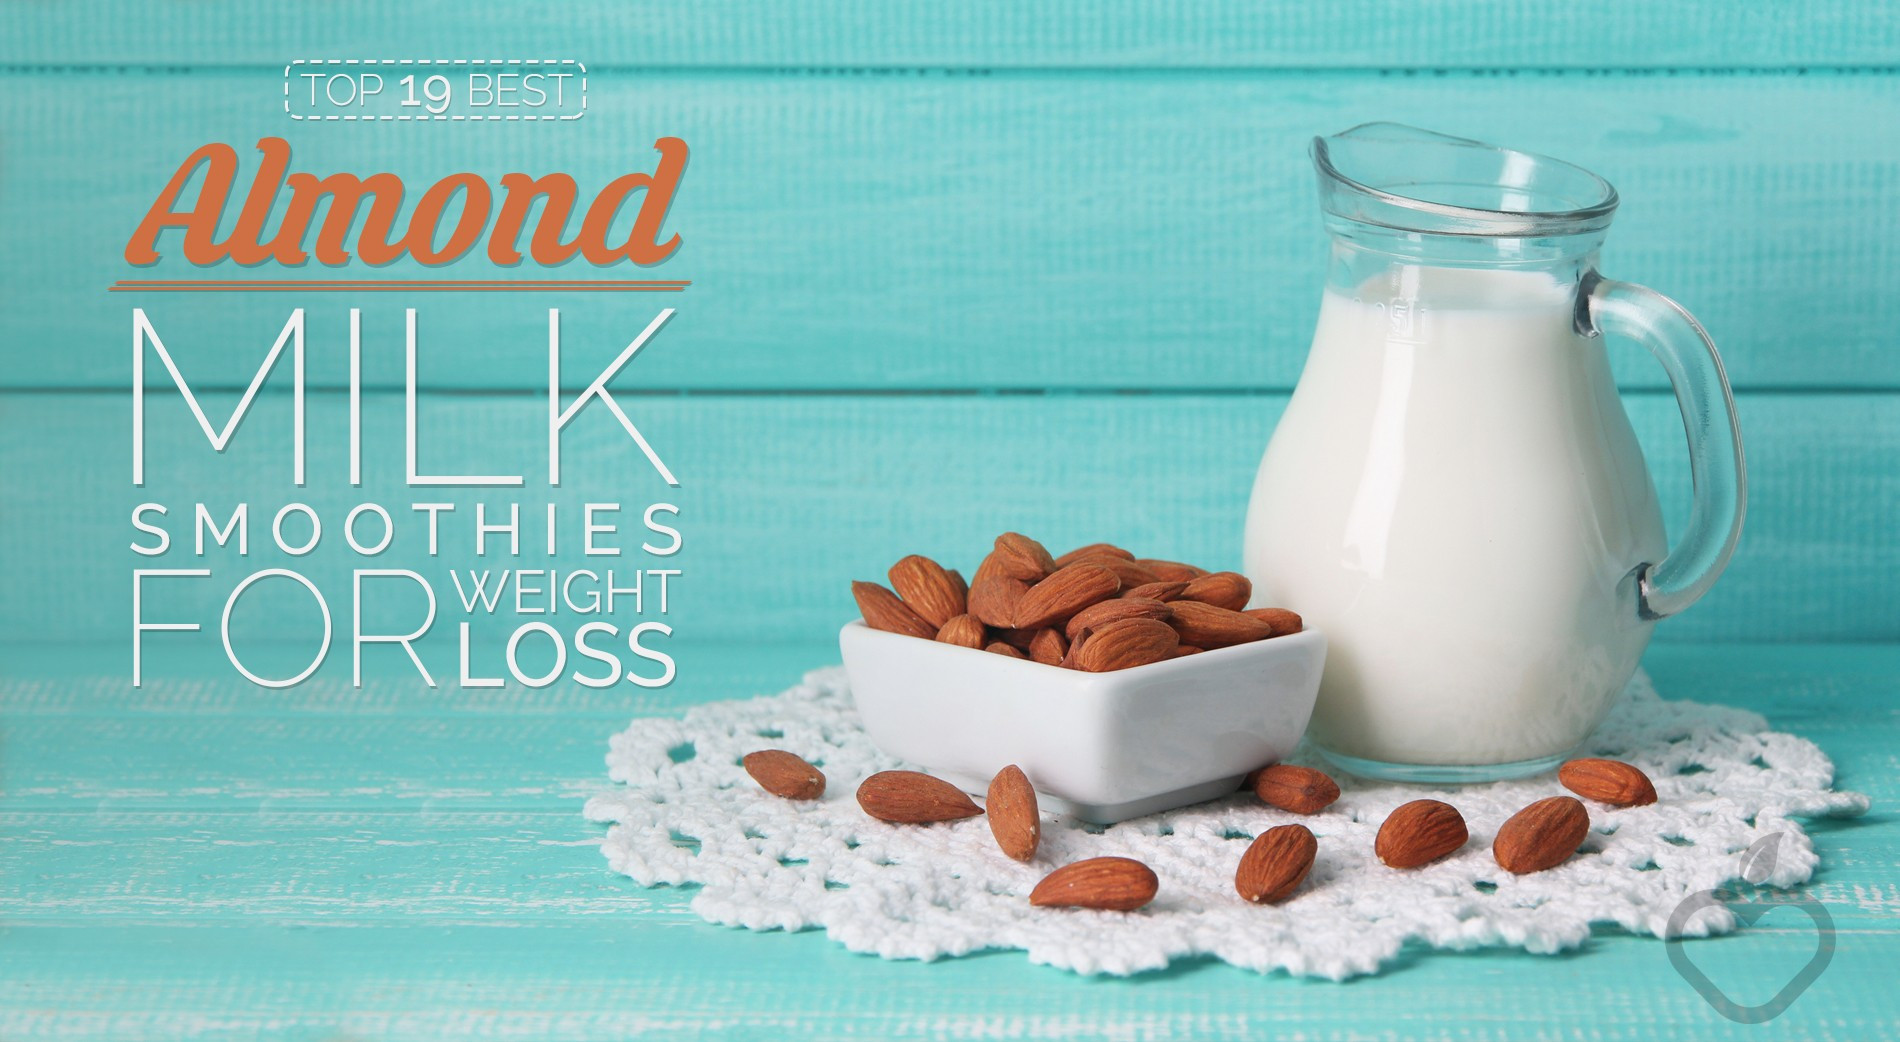 Dairy Free Weight Loss Smoothies  The 19 Best Almond Milk Smoothies For Weight Loss